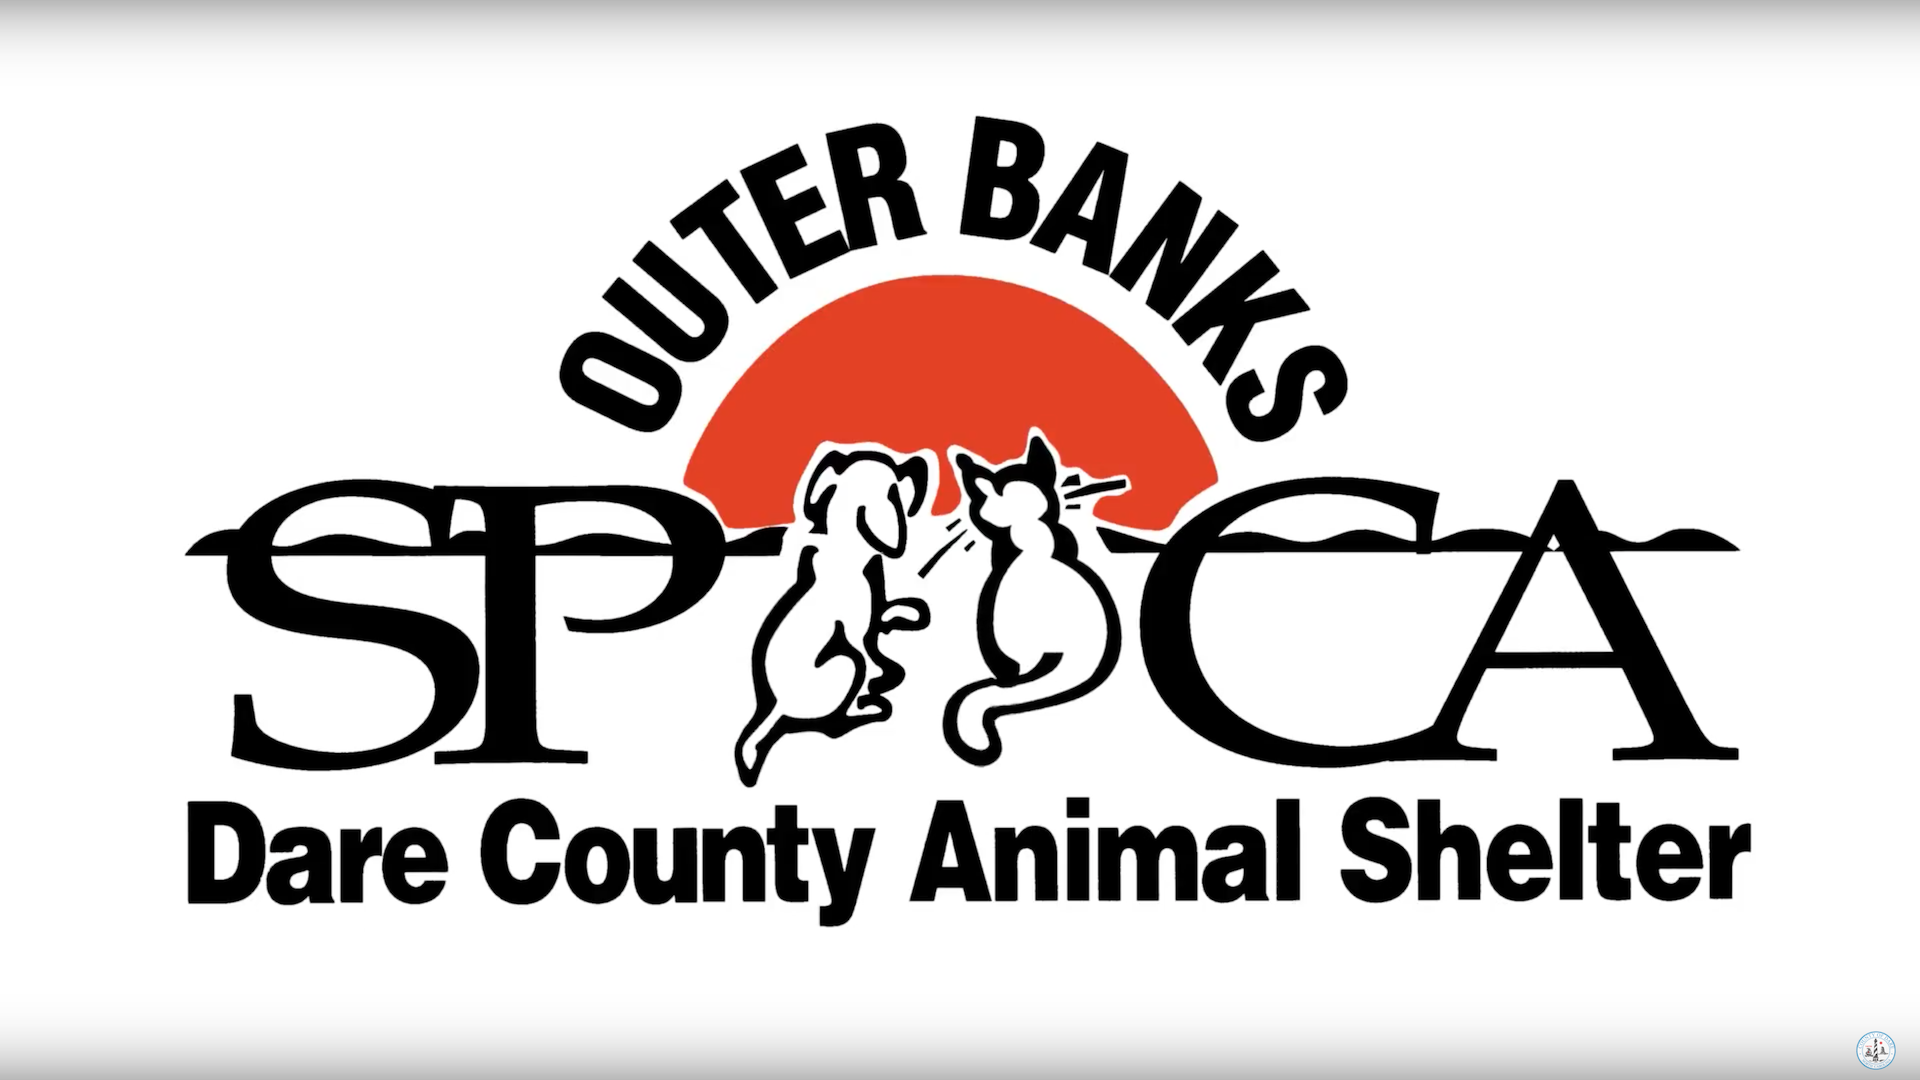 Nominee Outer Banks SPCA